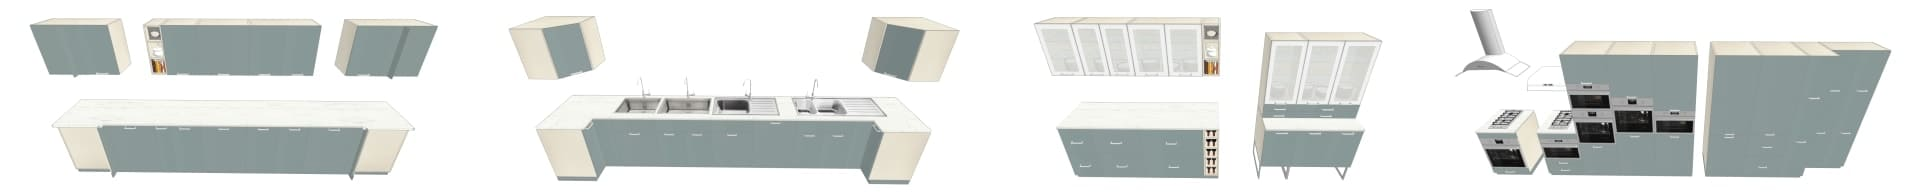 COLLECTION 3D IKEA KALLARP GRIS TURQ